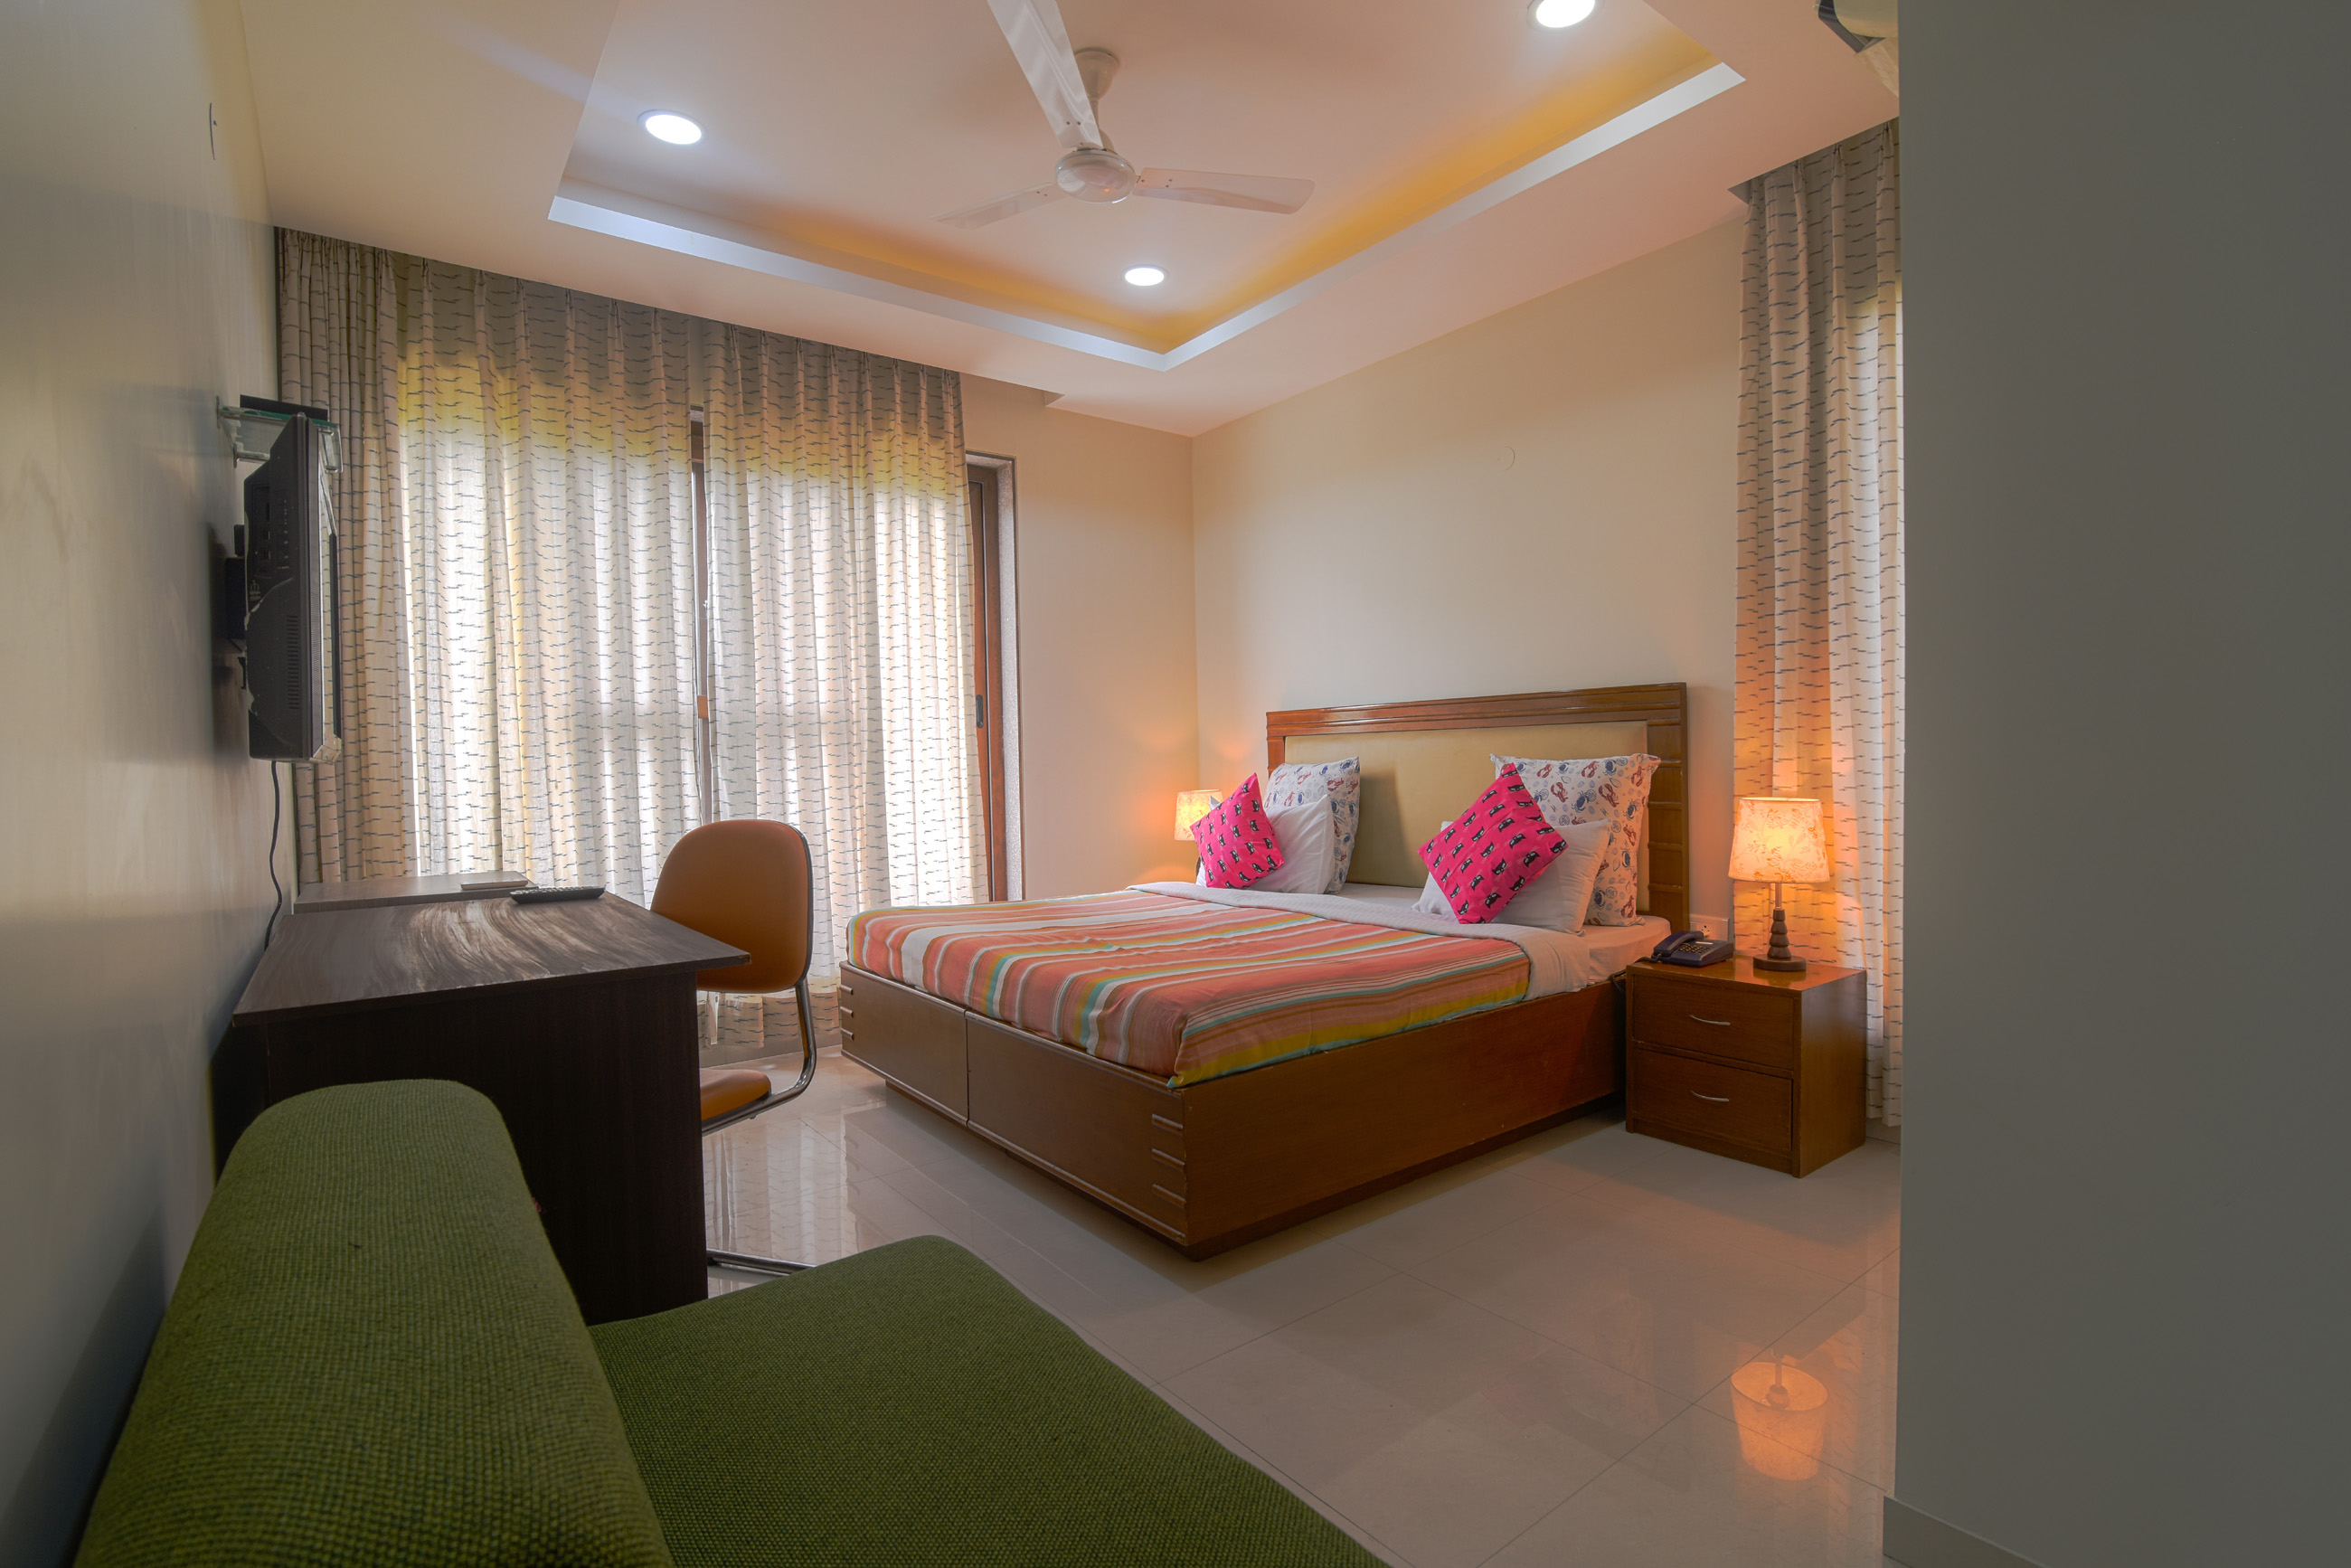 3 BHK  - Bedroom